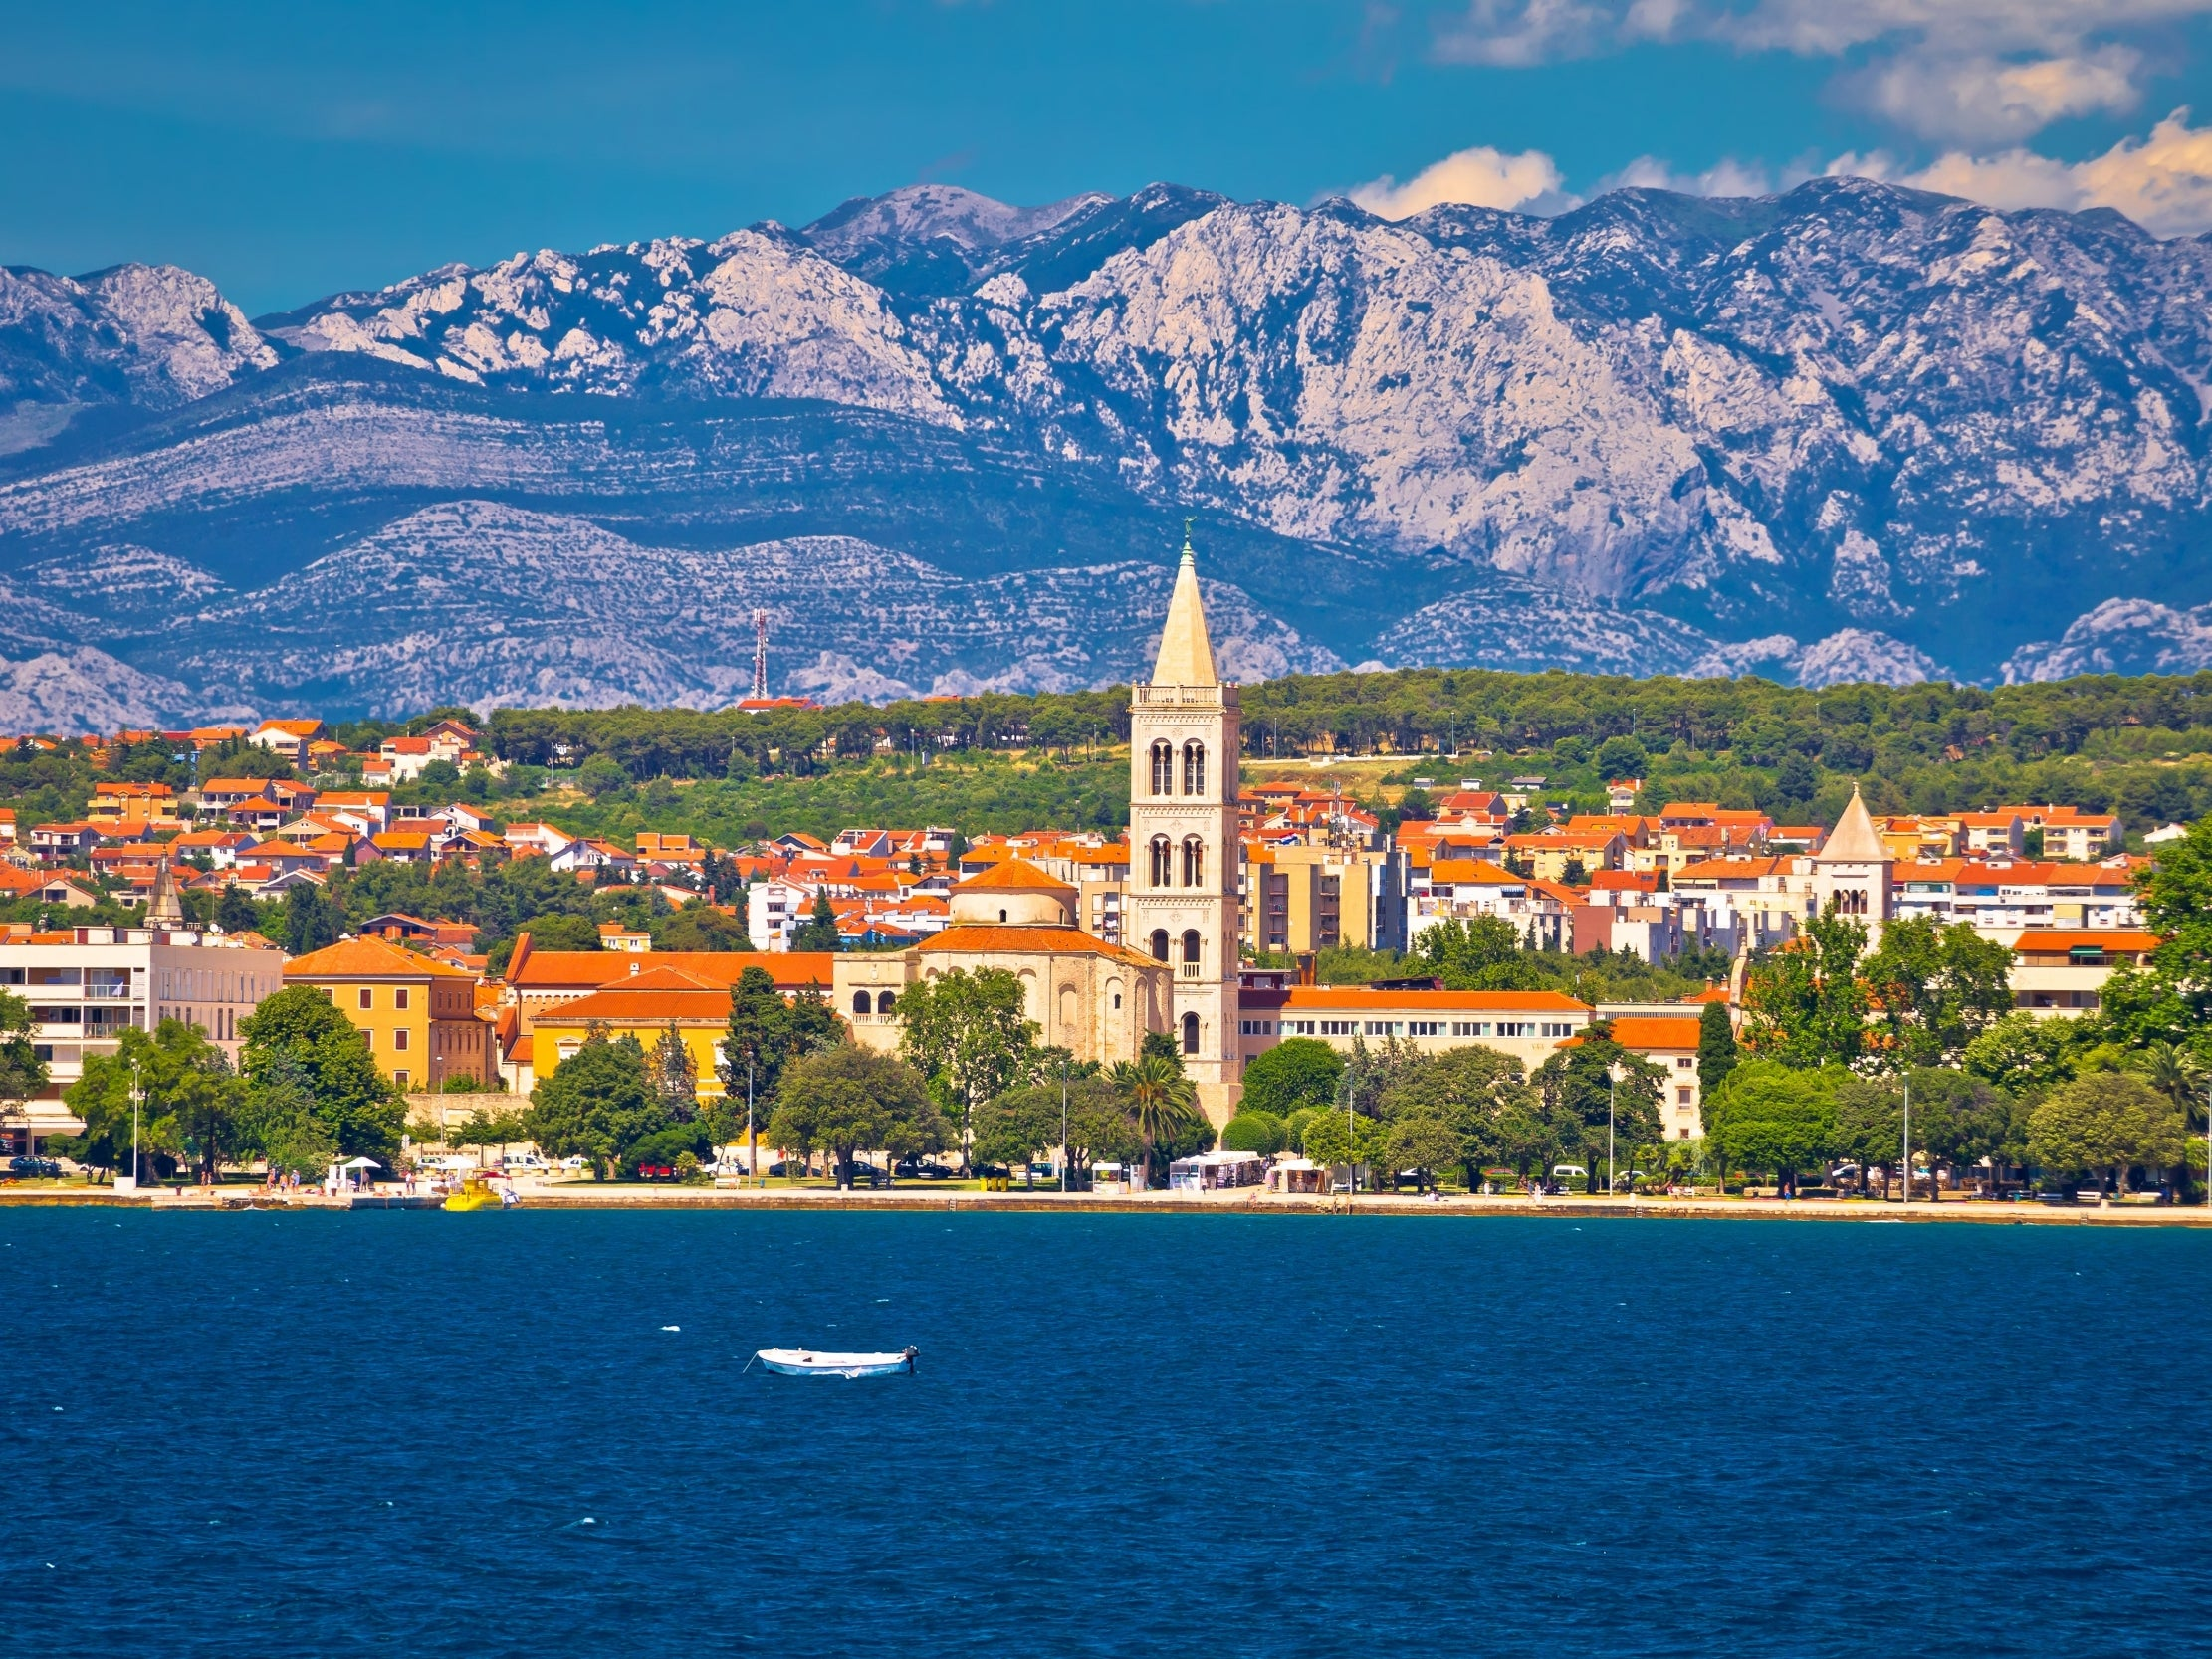 Zadar, Croatia: Incomparable sunsets, a 'sea organ' and untrammelled islands